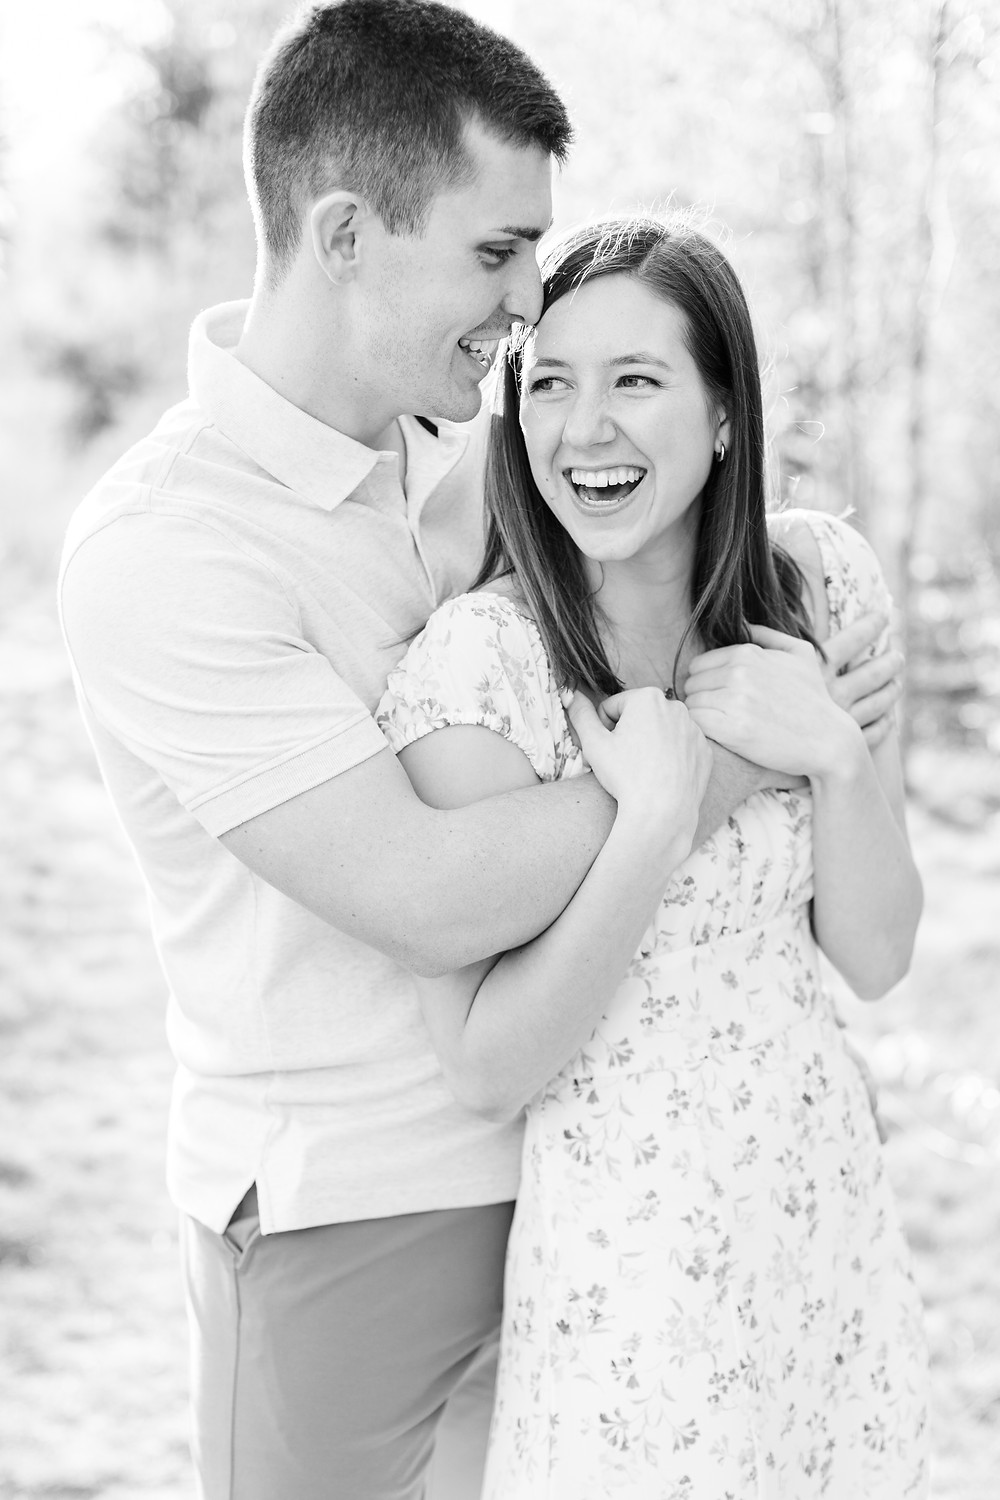 Josh and Andrea wedding photography husband and wife photographer team michigan engagement pictures session photo shoot fiance Riley Trails laughing smiling